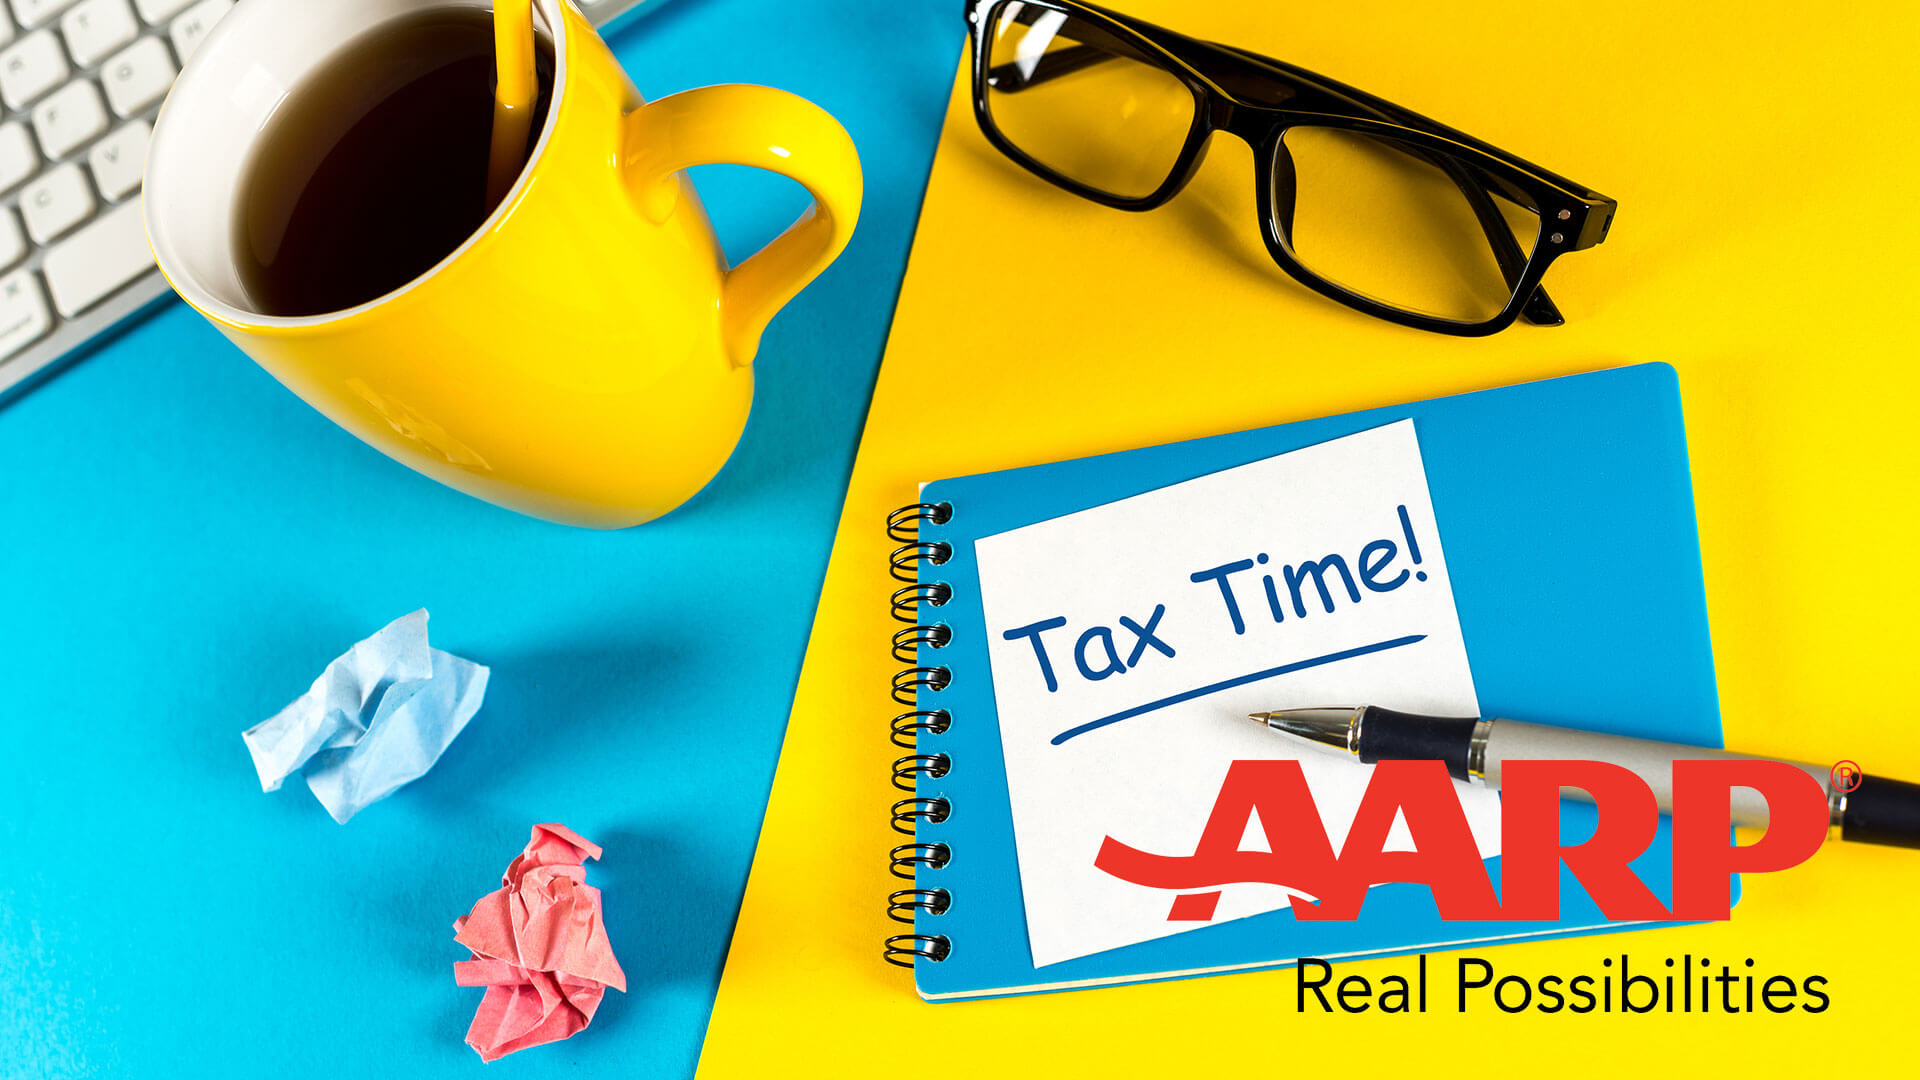 AARP Tax Aide 2019